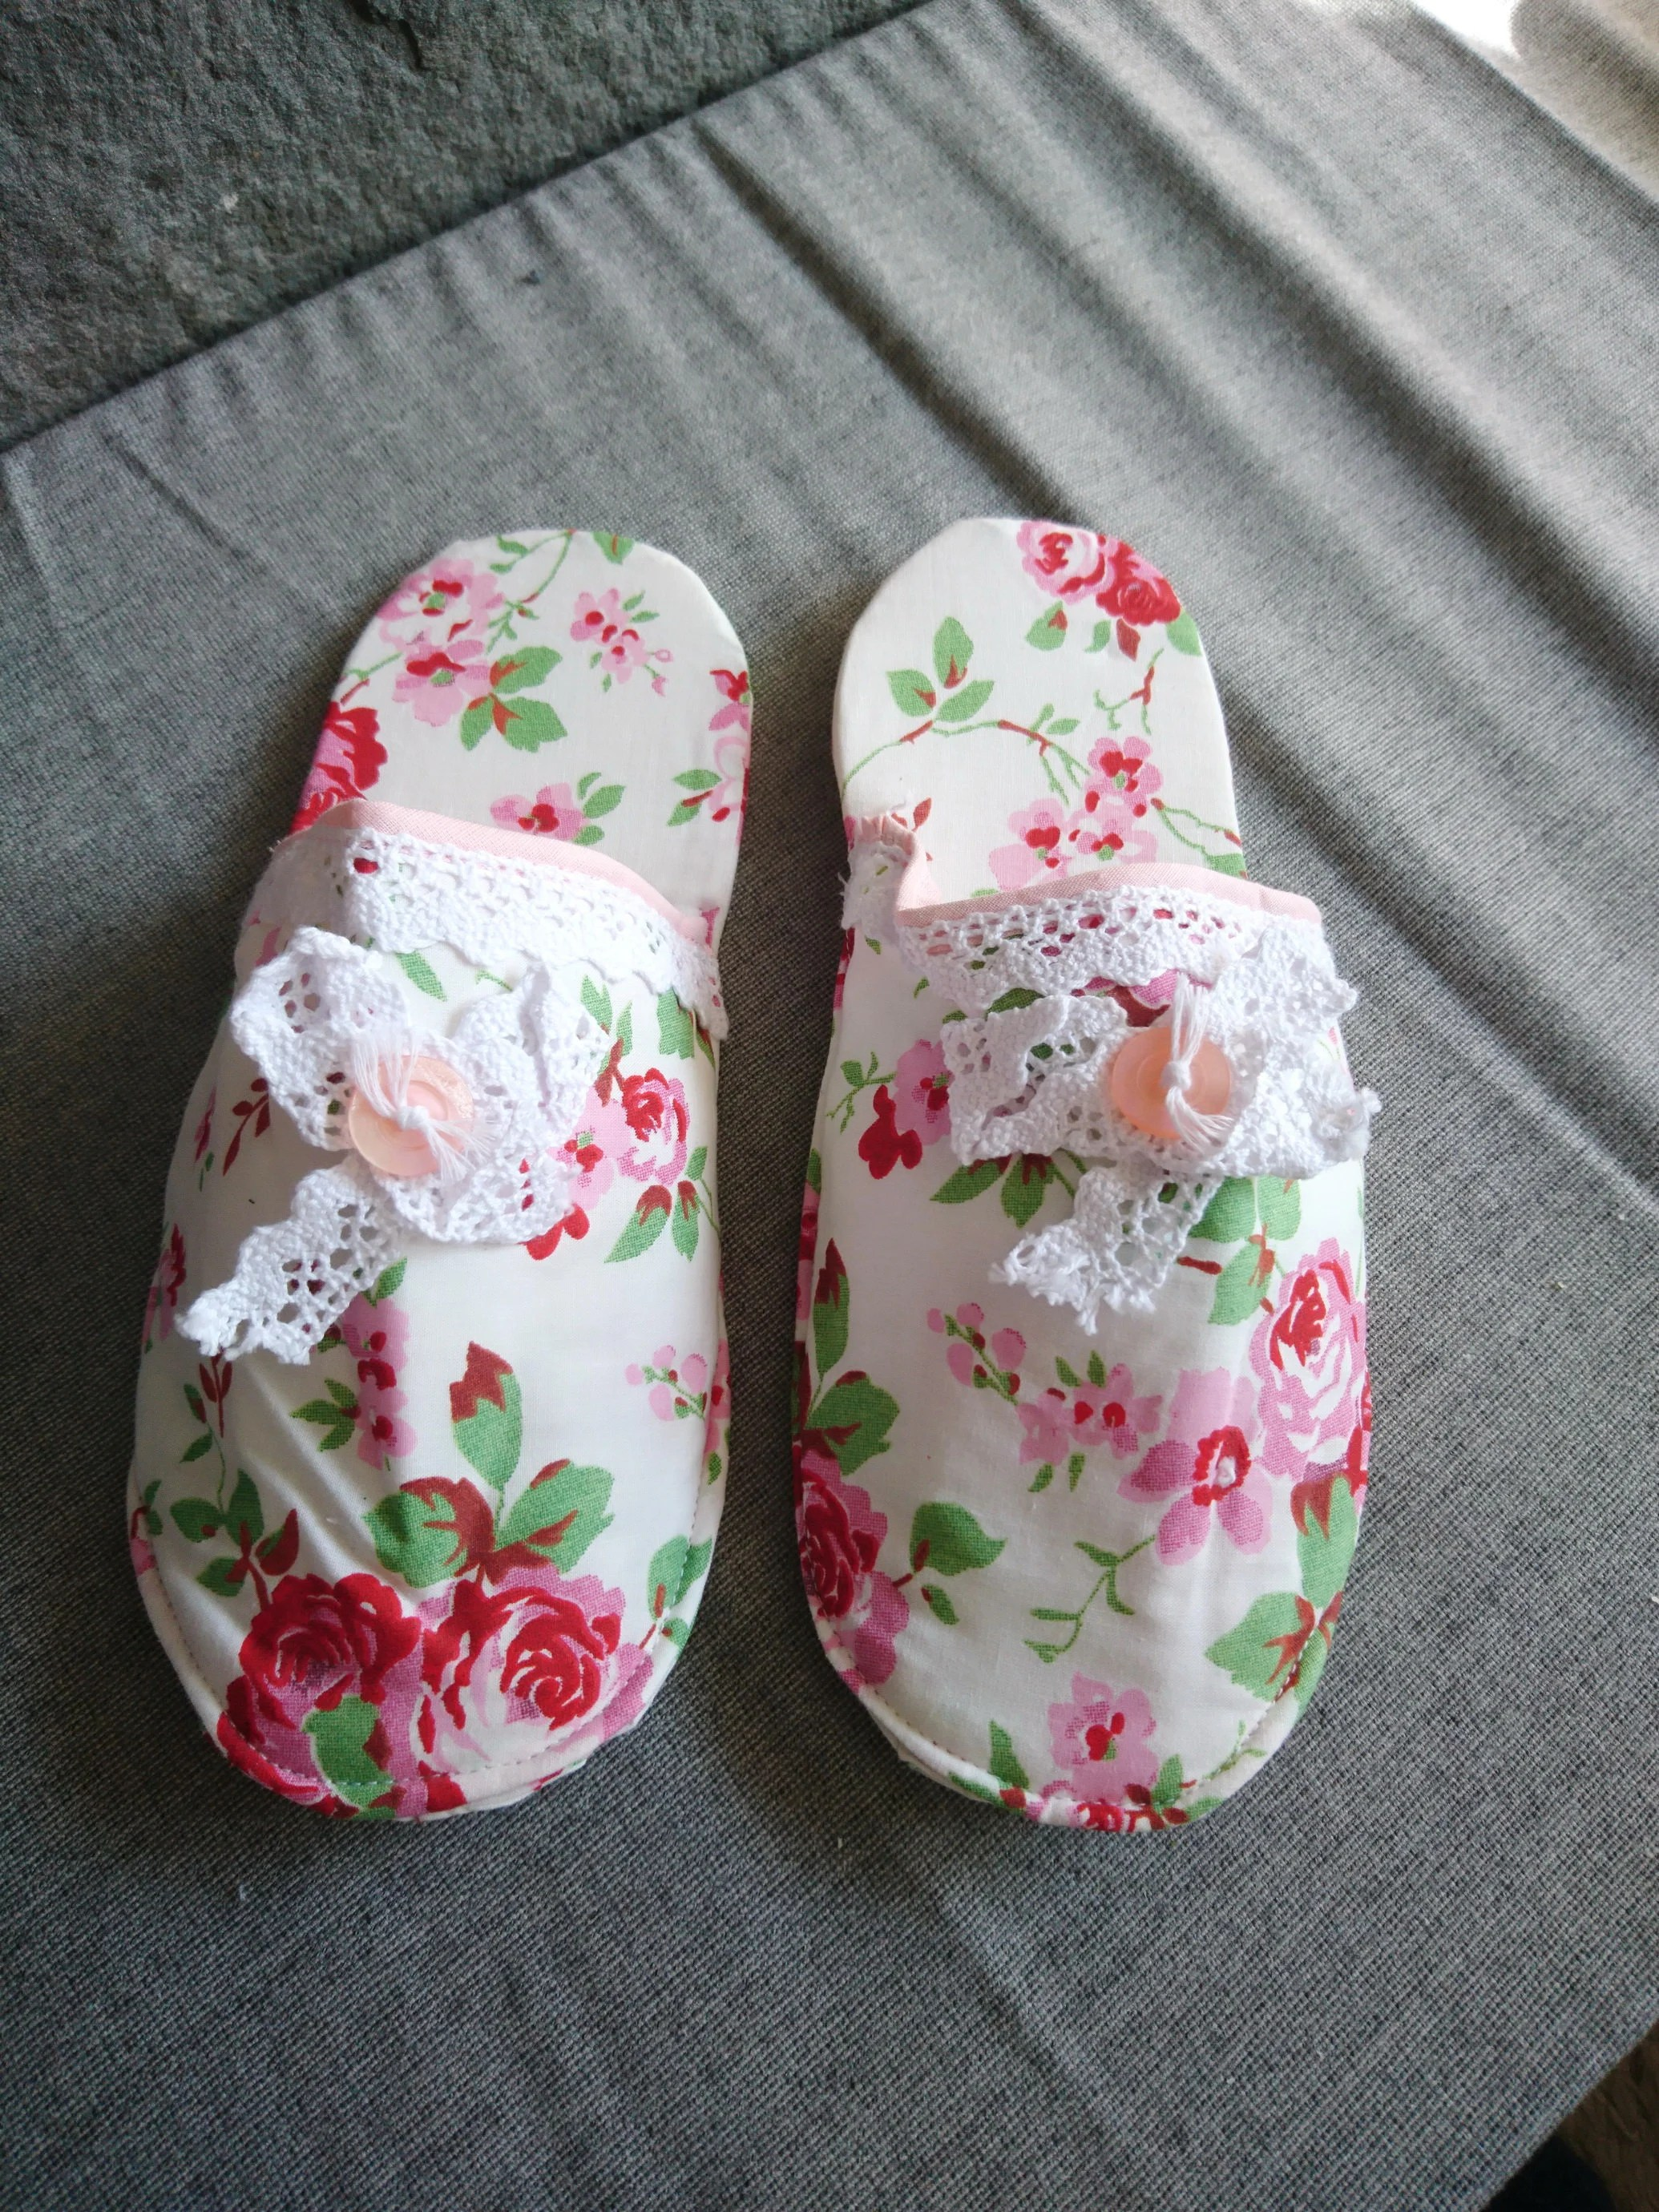 Baby Hotel Slippers Slippers Slippers Slippers Travel Slippers Hotel Shoes